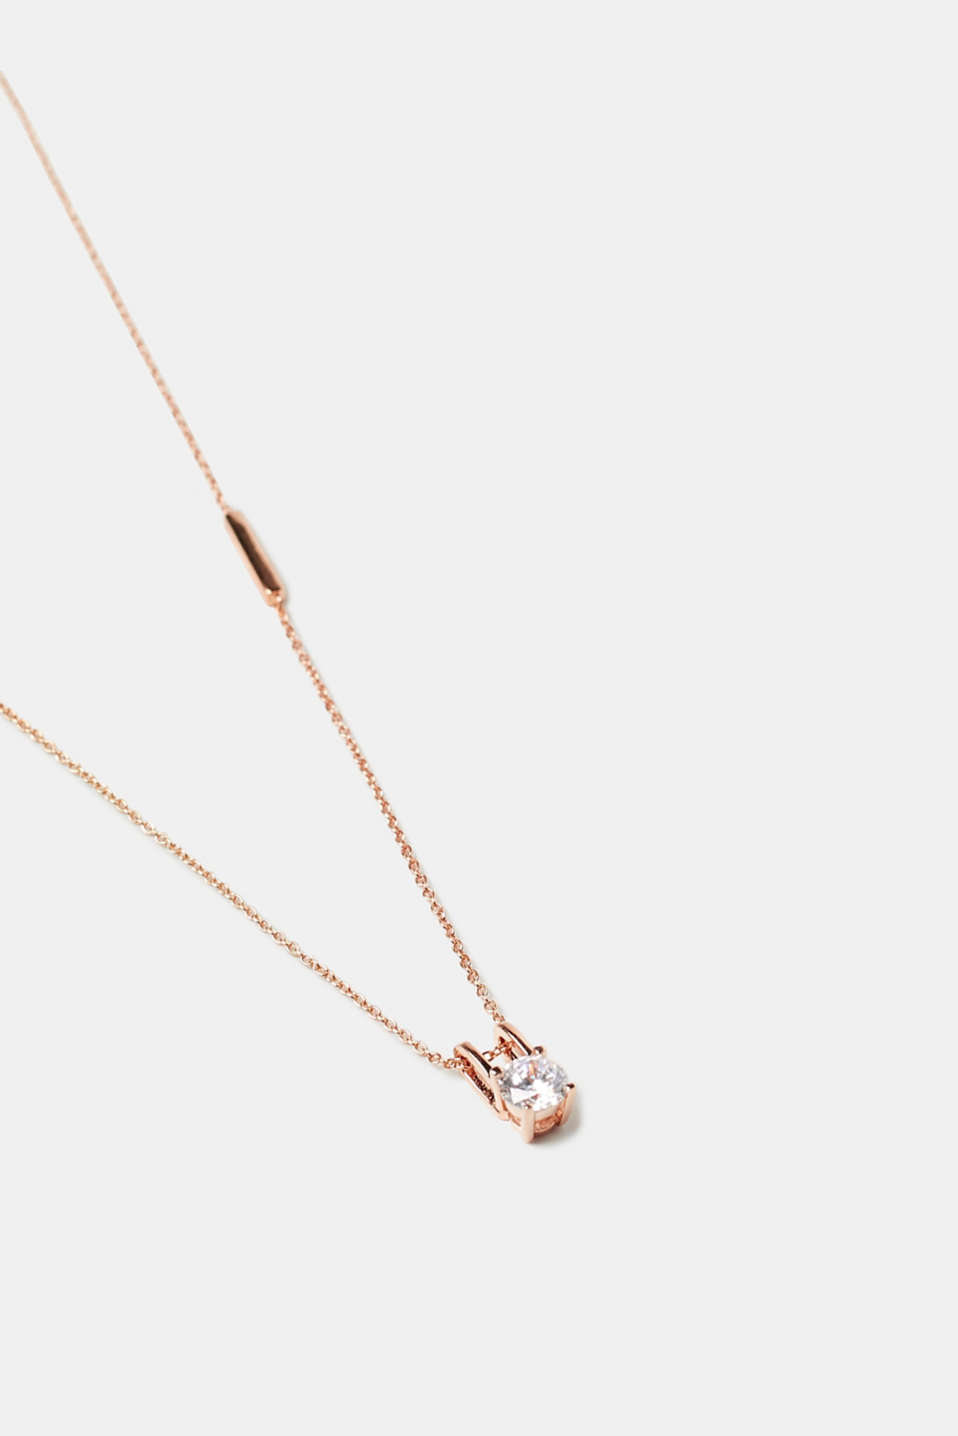 Fine necklace with pendant in rose gold